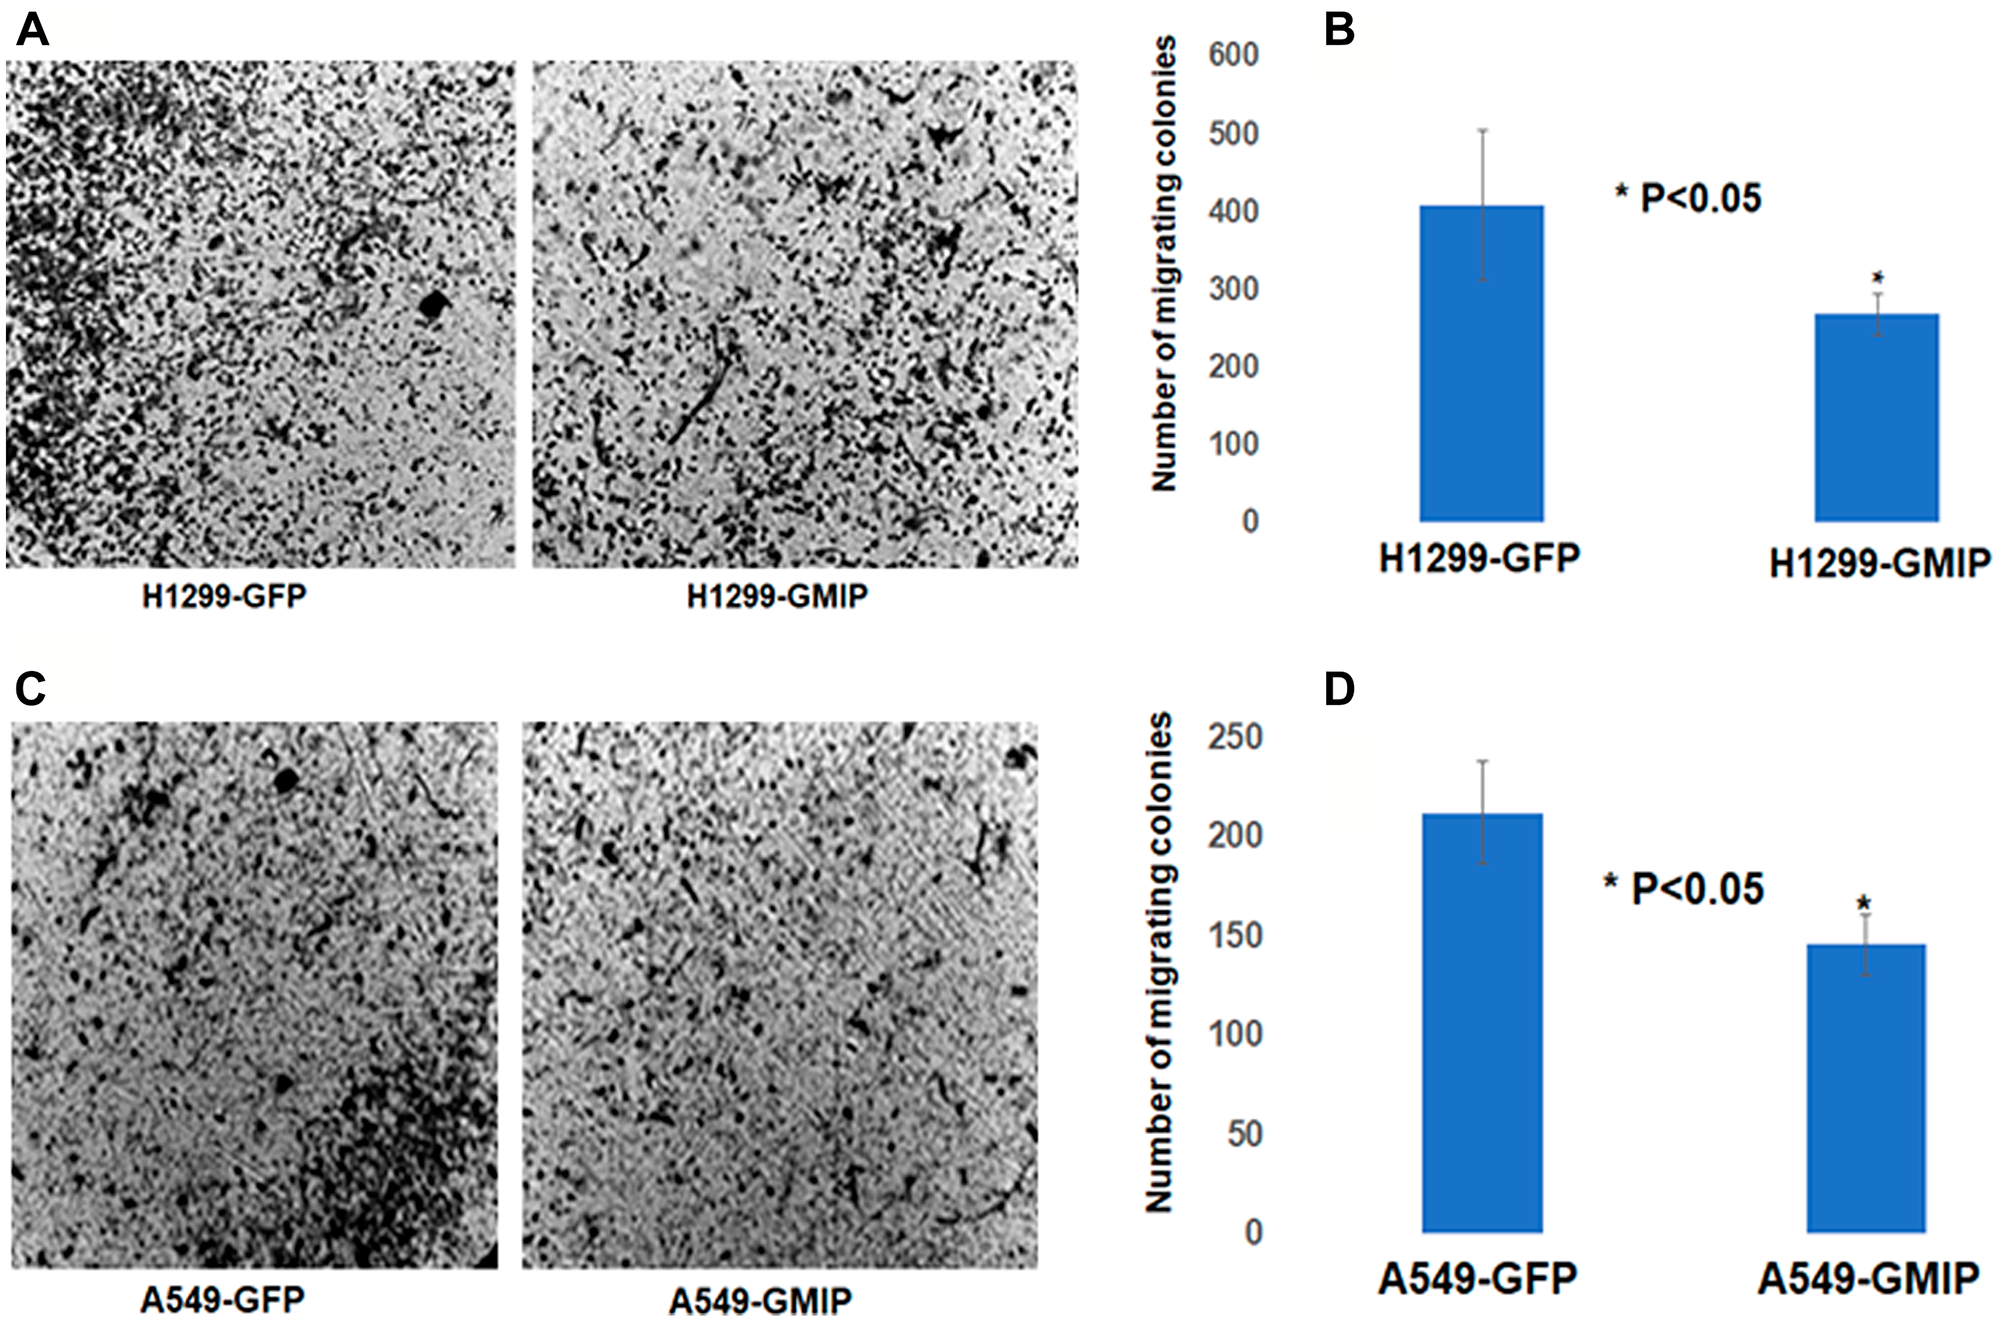 The BD BioCoatTM MatrigelTM Invasion Chamber was used to assess cell invasion/migration of H1299 and A549 cells transfected with GFP or GFP-GMIP plasmid.